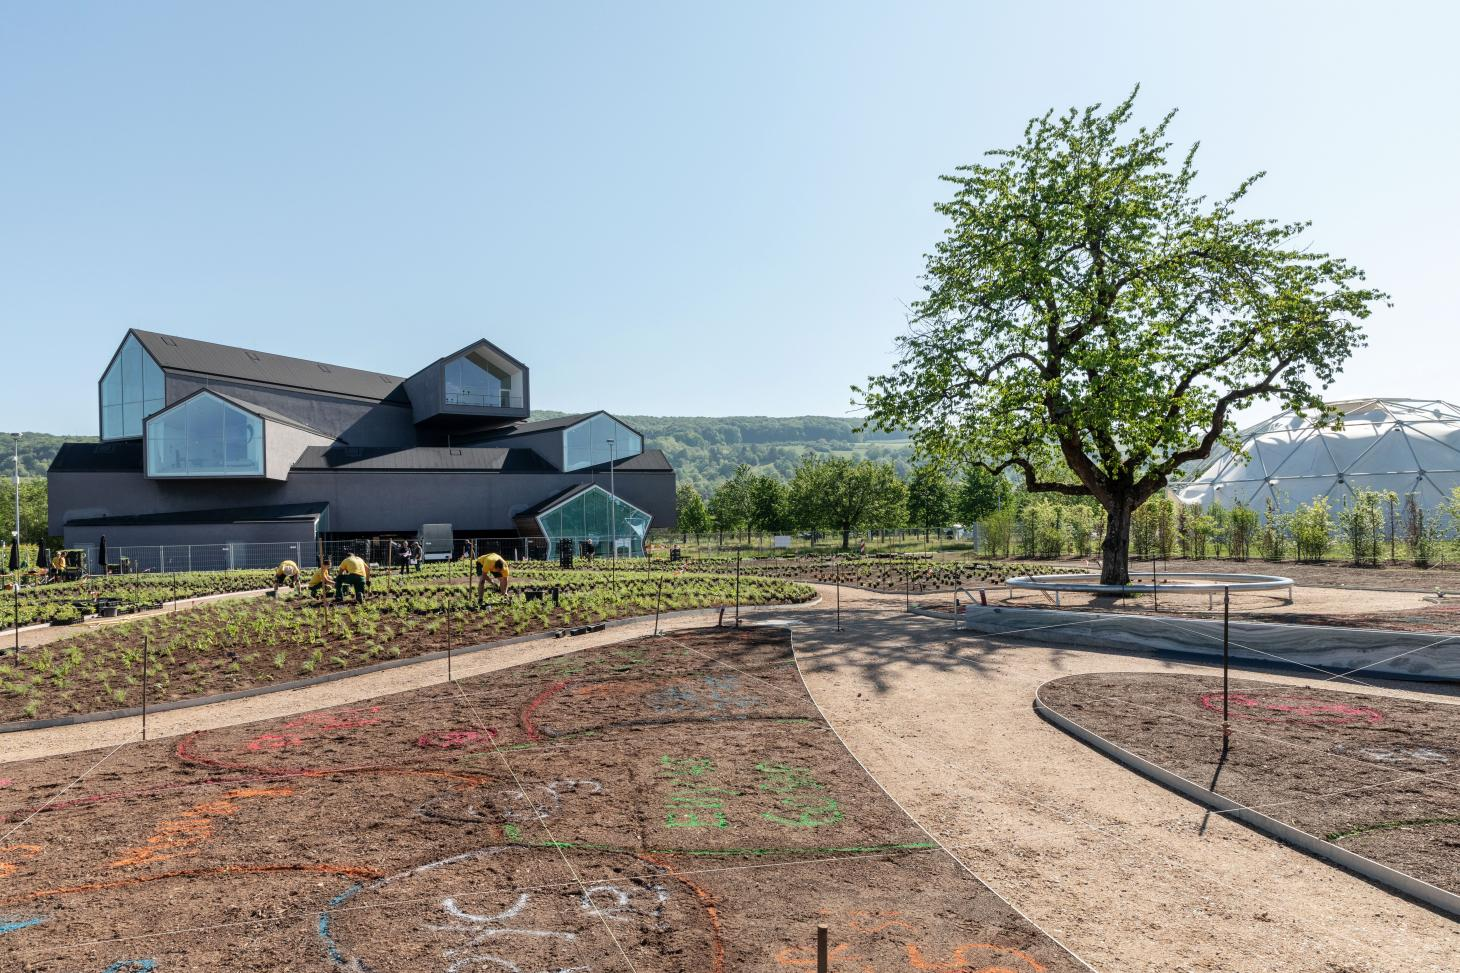 A work in progress shot of Piet Oudolf's garden for Vitra as it's being planted, with Vitra Haus visible in the background